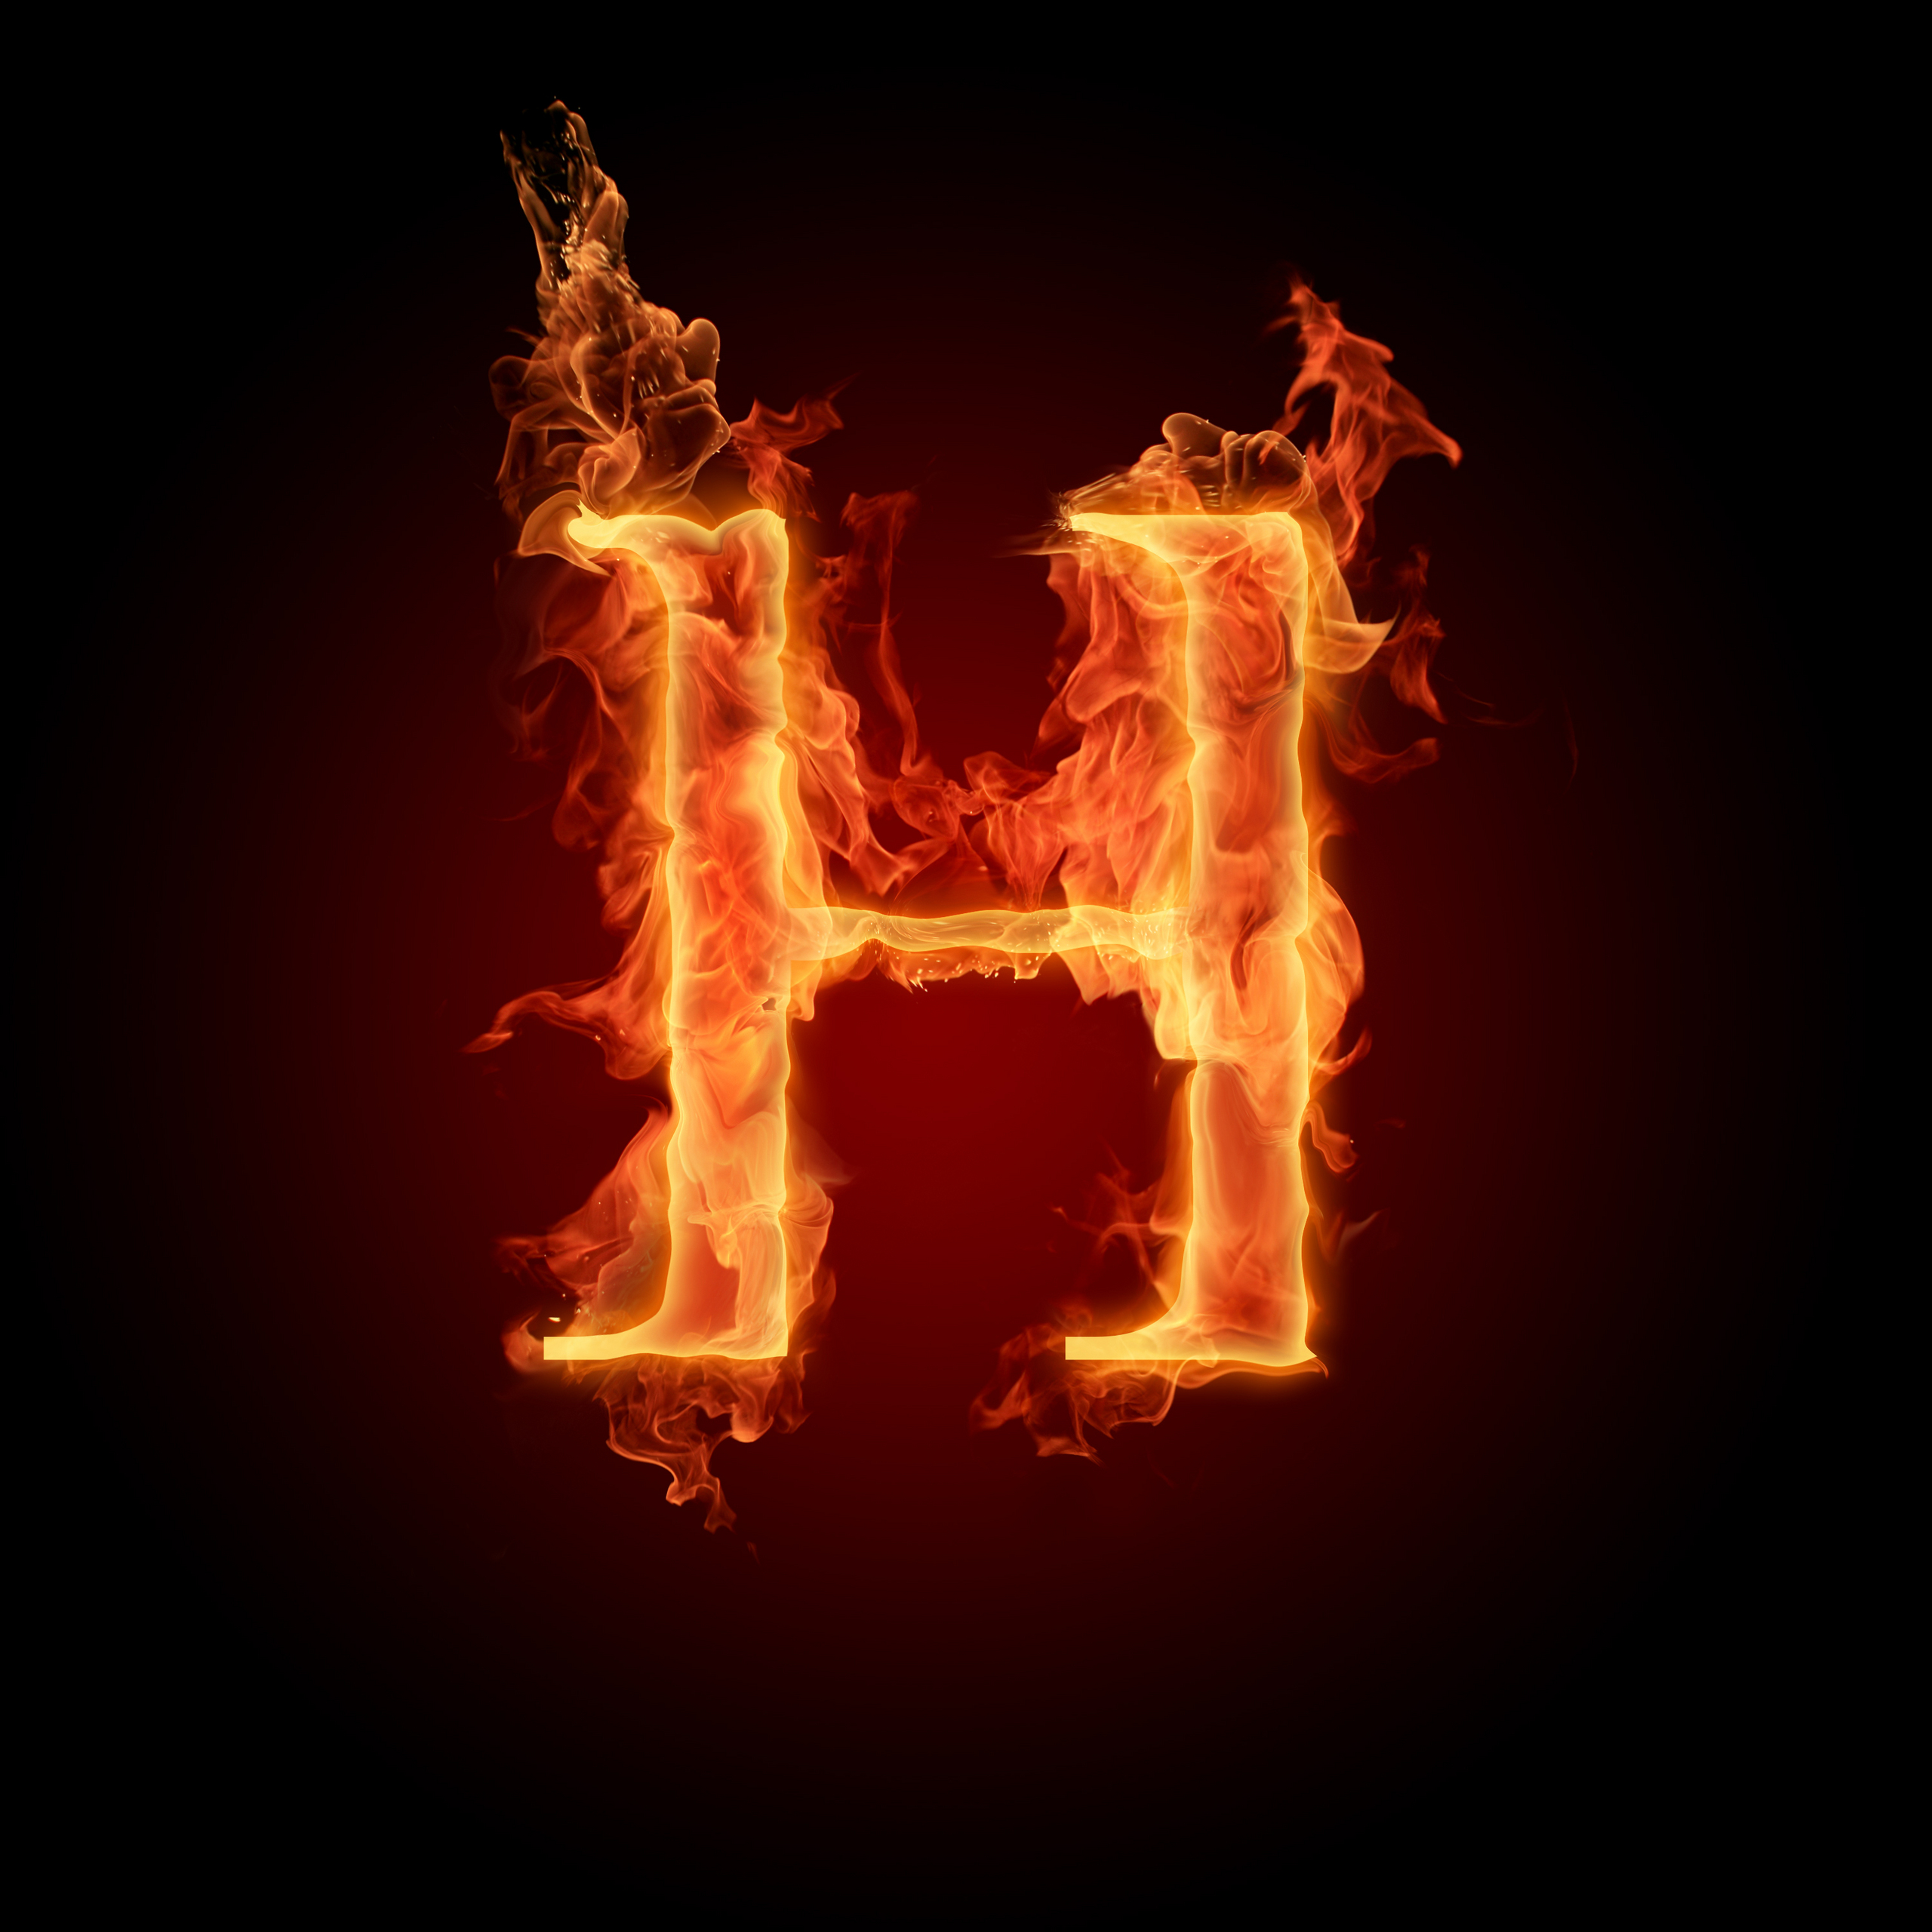 Wonderful The Letter H Images The Letter H HD Wallpaper And Background Photos